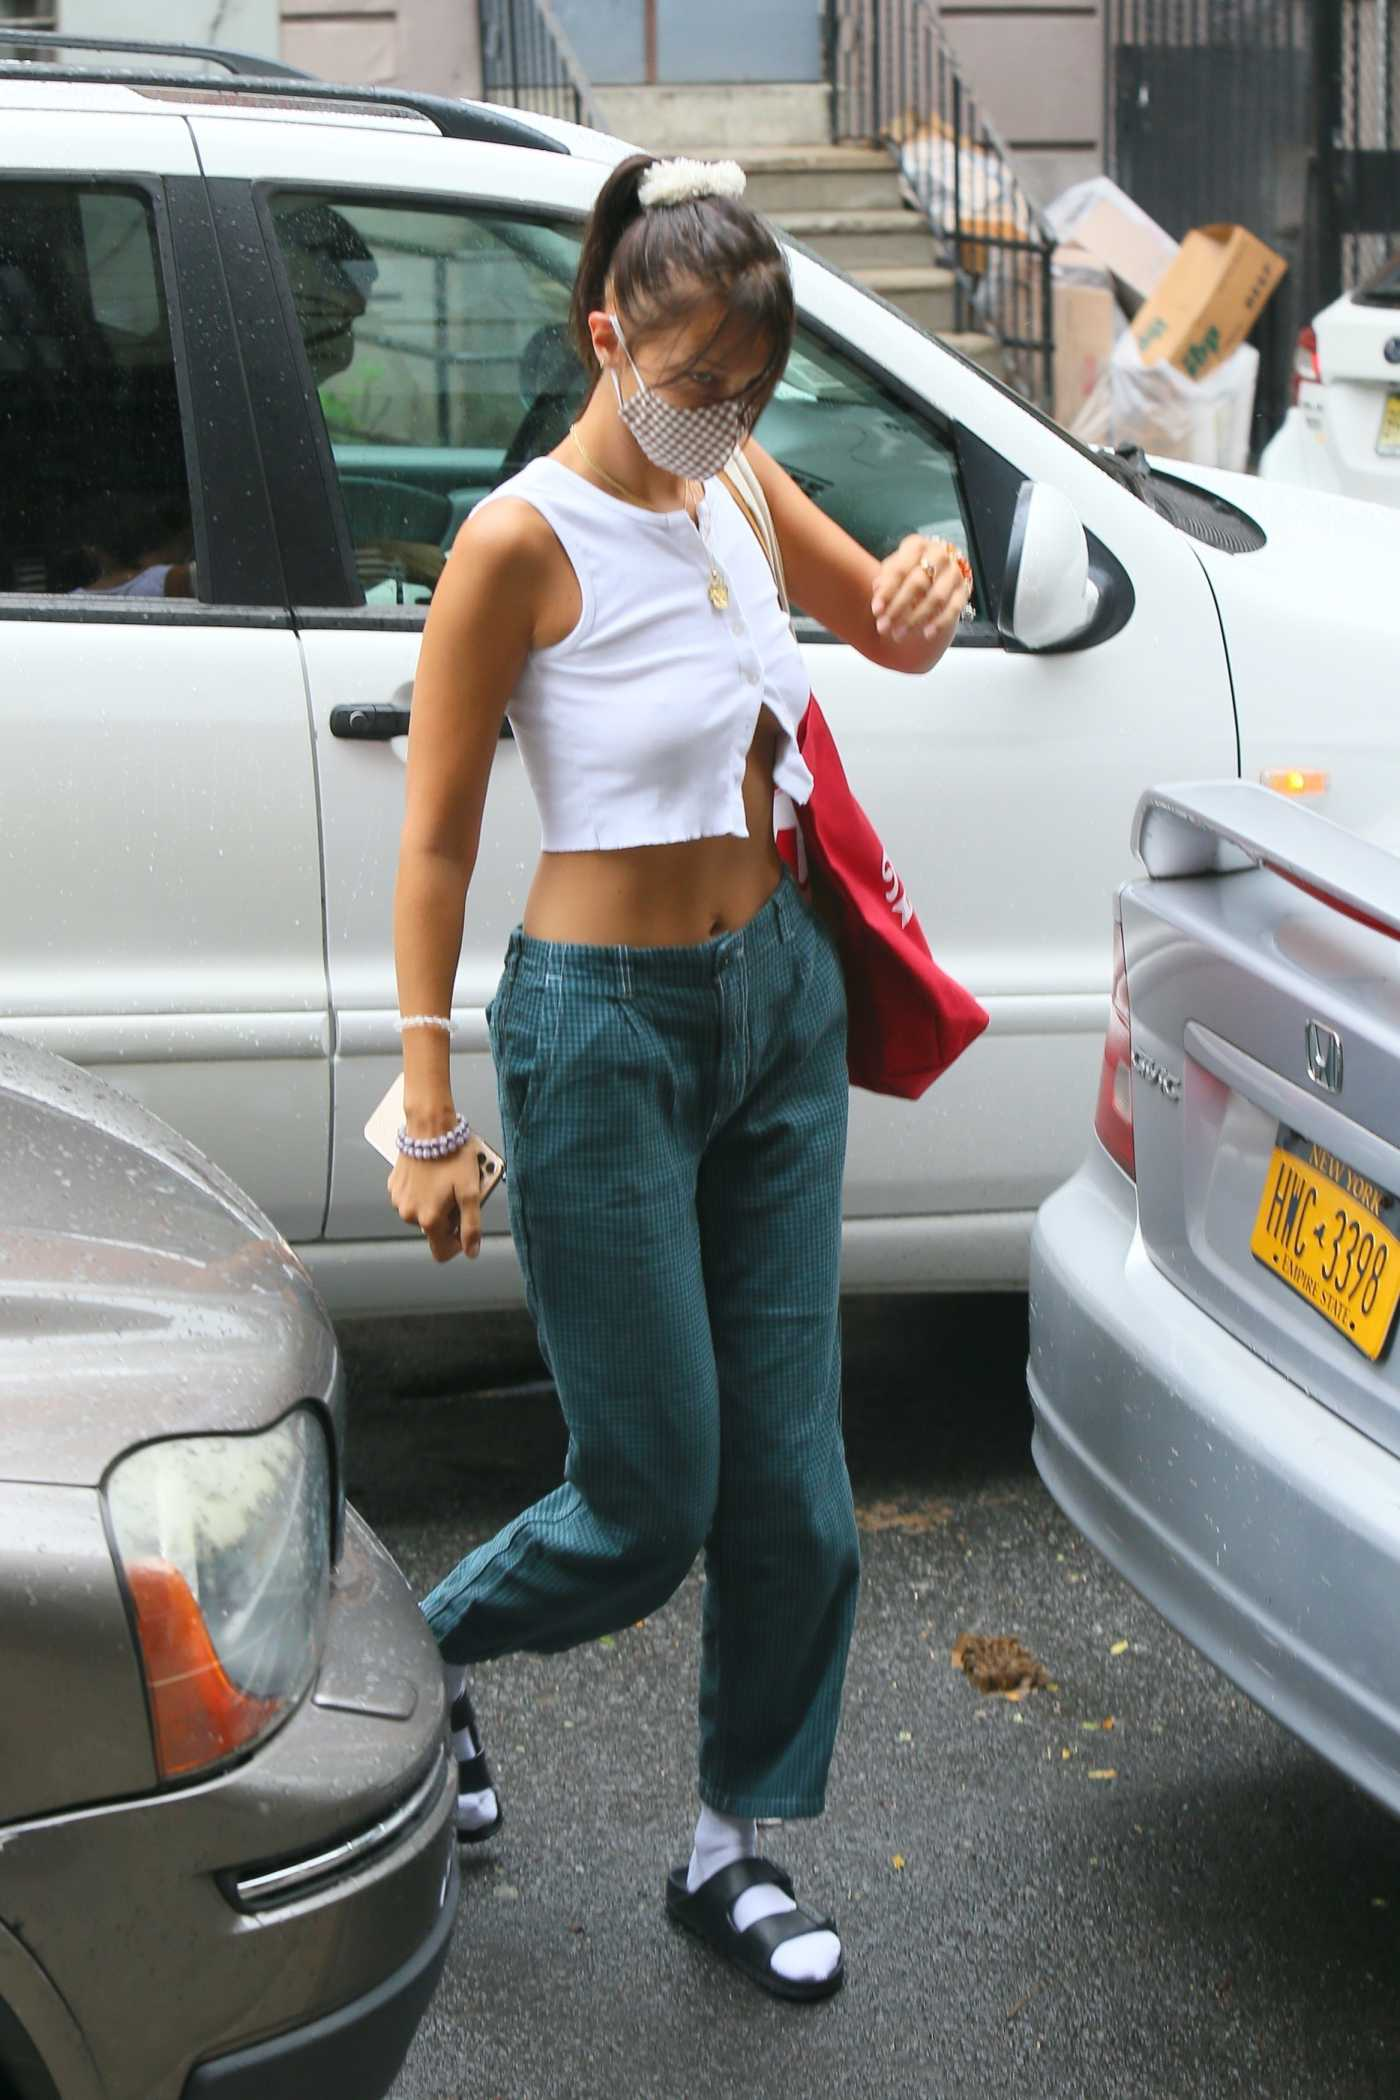 Bella Hadid in a White Top Visits a Friend in New York 08/13/2020